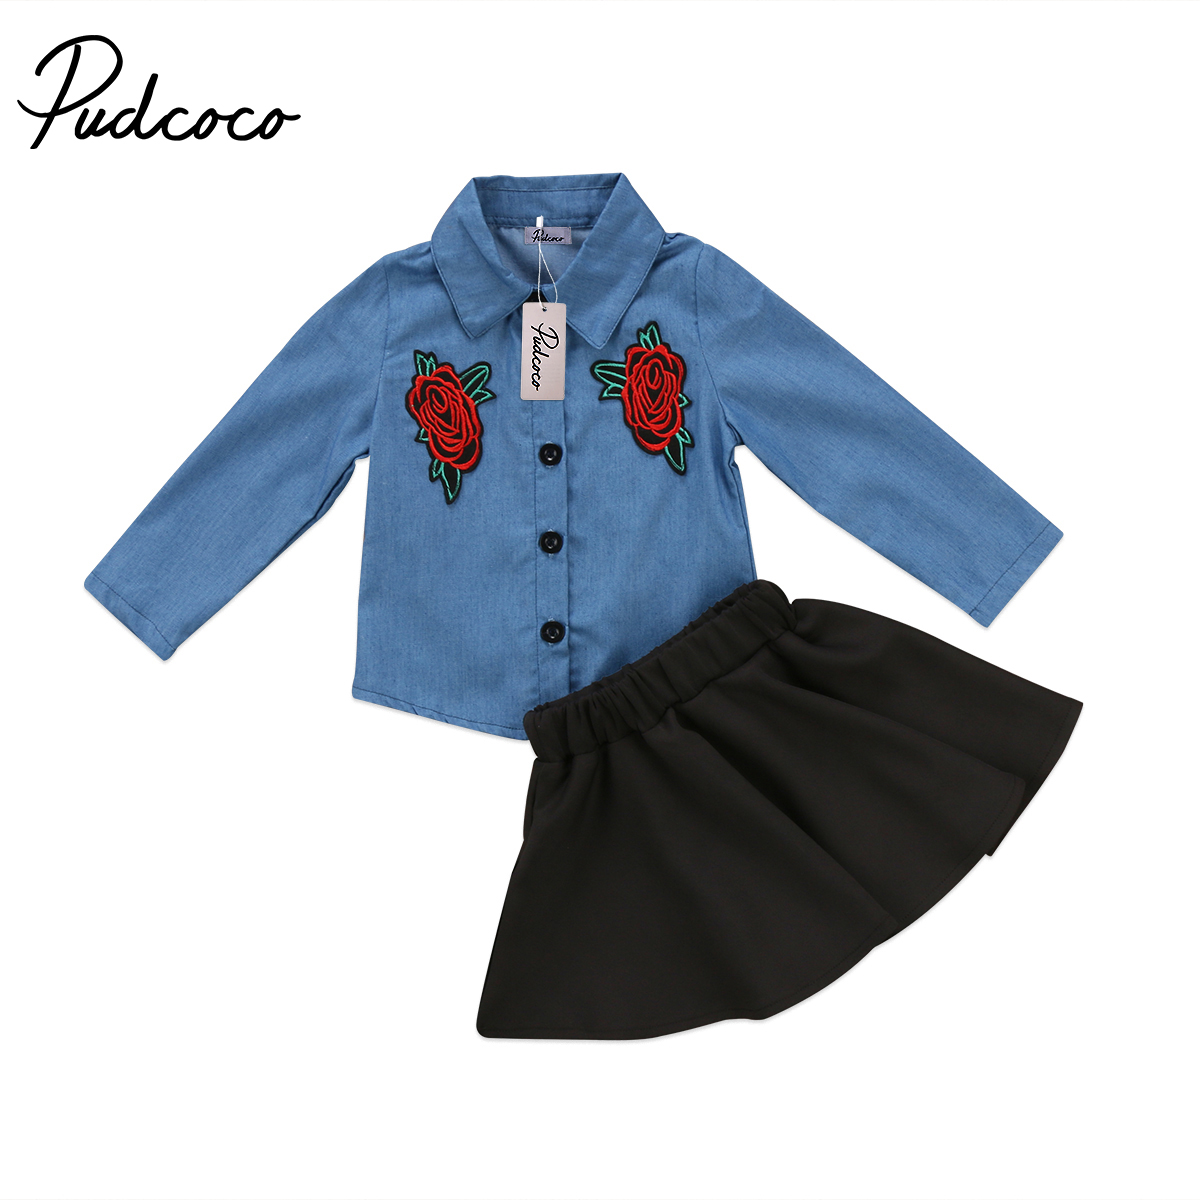 2PCS Girls Outfits Kids Baby Girls Denim Shirts Floral Tops+Black Skirts Embroidery Outfits Girls Summer Autumn Clothes Set 2pcs ruffles newborn baby clothes 2017 summer princess girls floral dress tops baby bloomers shorts bottom outfits sunsuit 0 24m